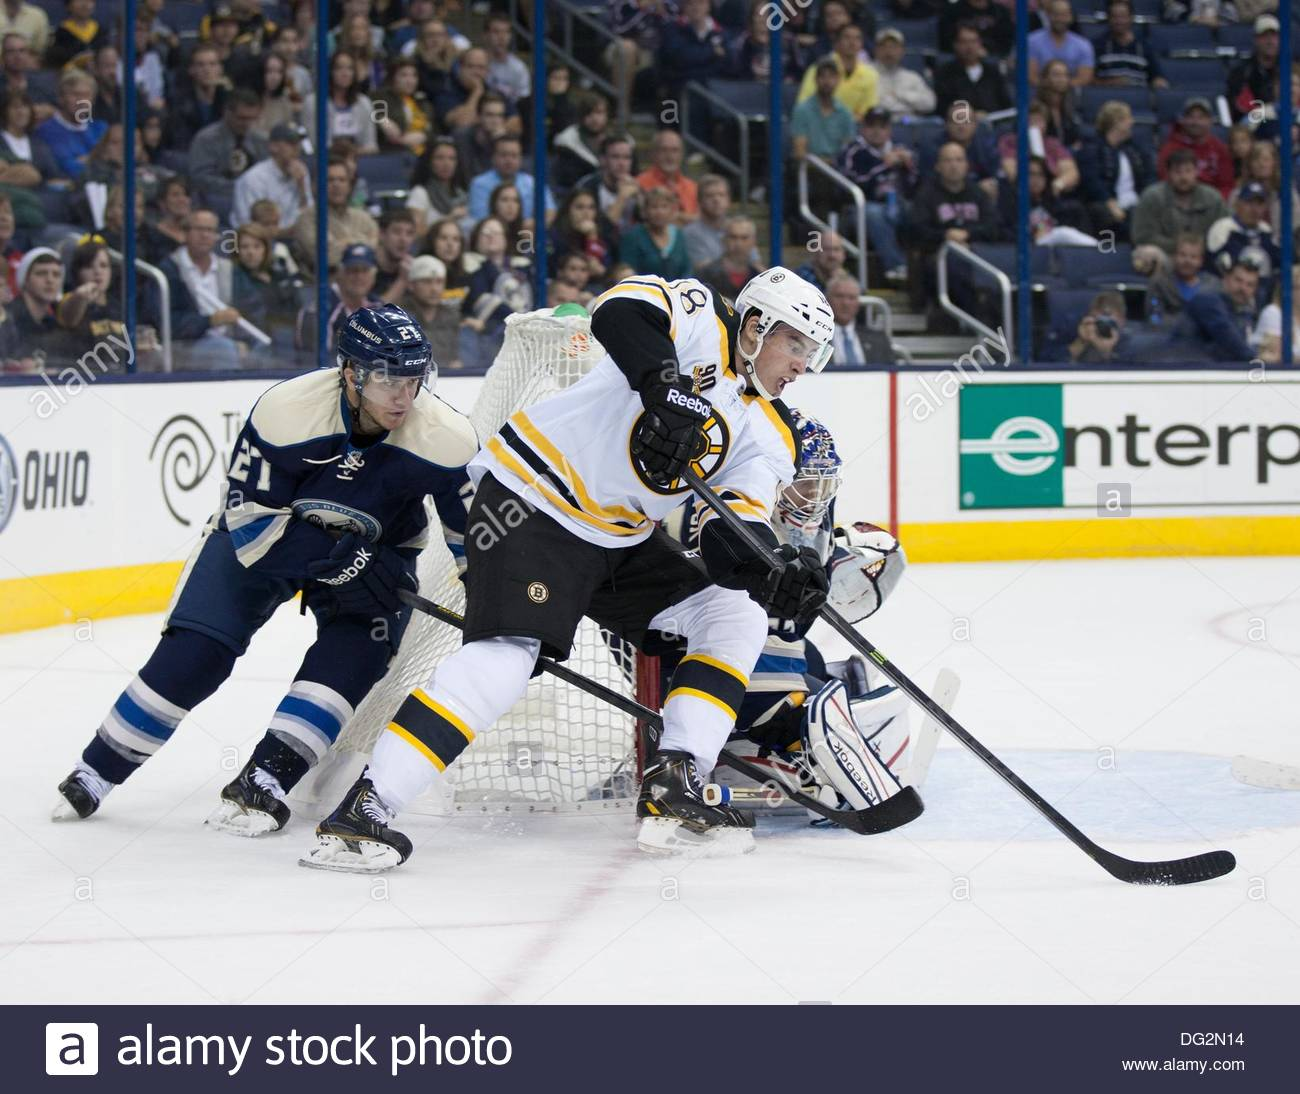 Reilly Smith Stock Photos & Reilly Smith Stock Images